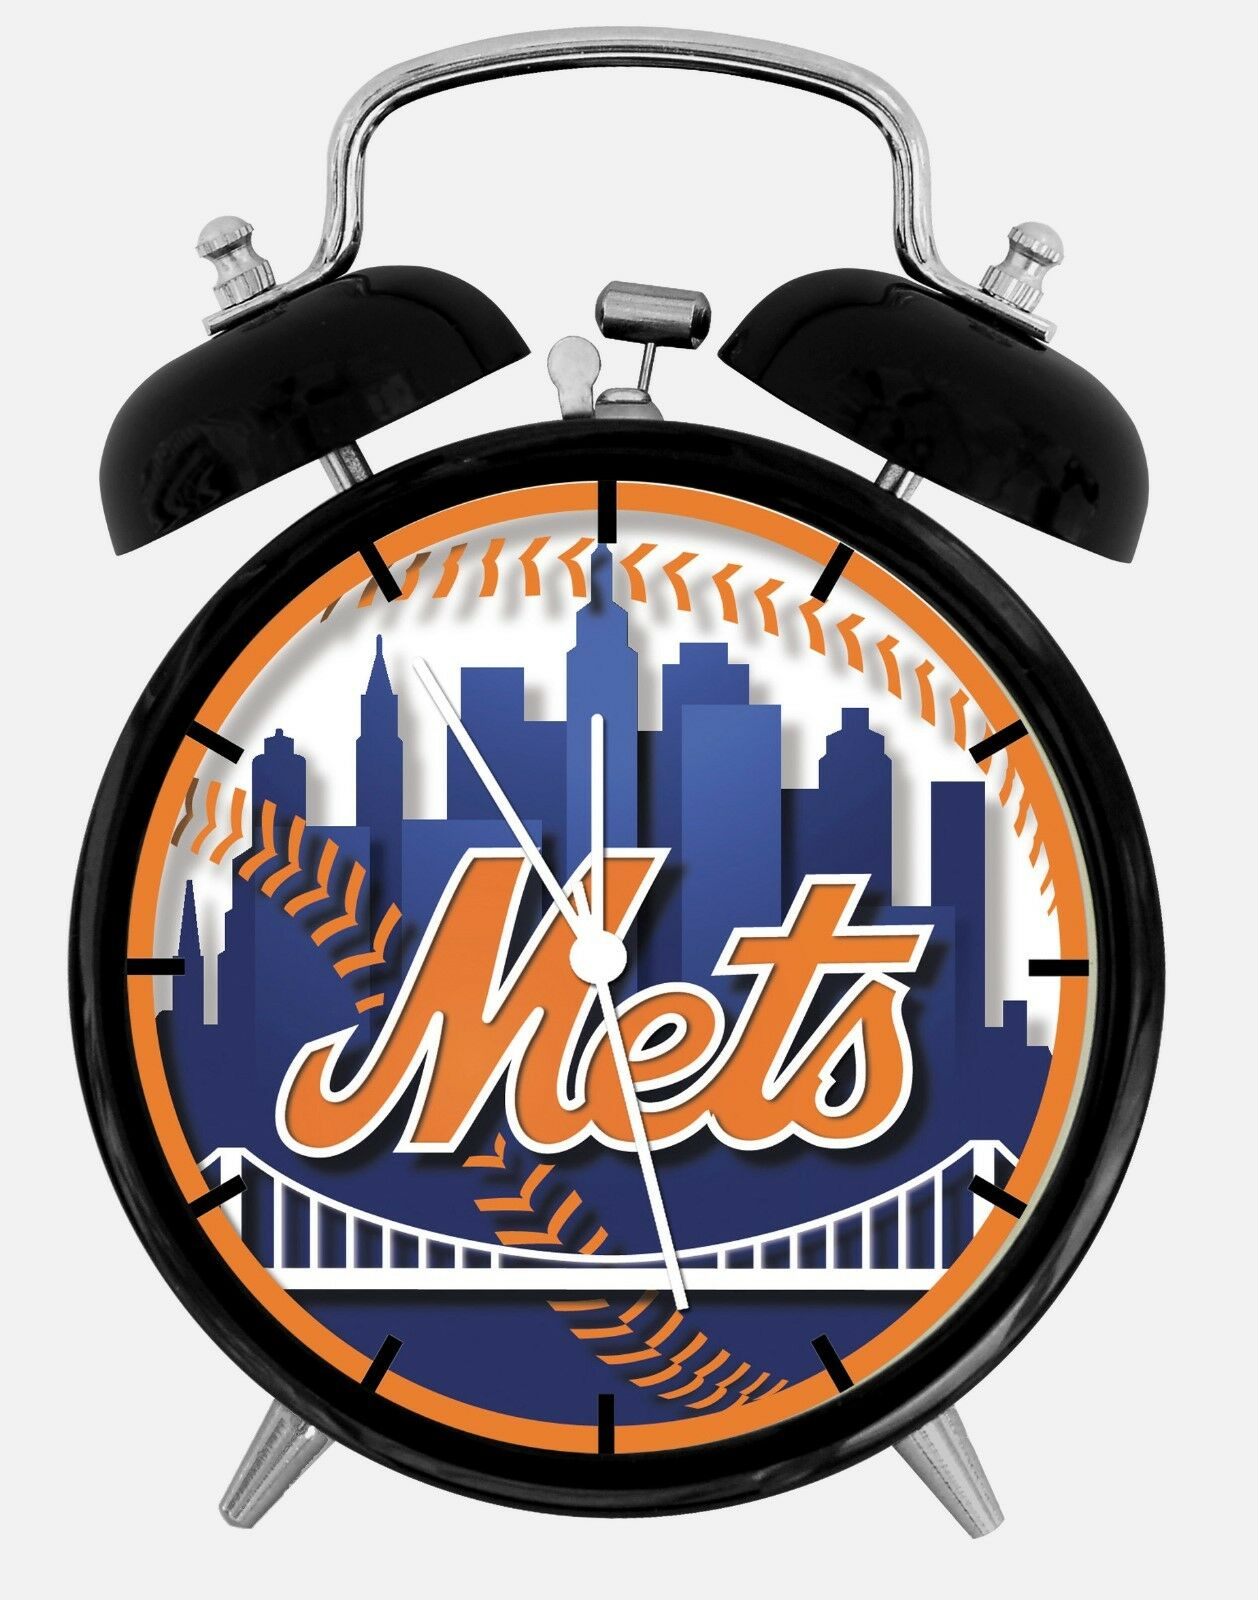 """New York Mets Alarm Desk Clock 3.75"""" Home or Office Decor W137 Nice For Gift"""